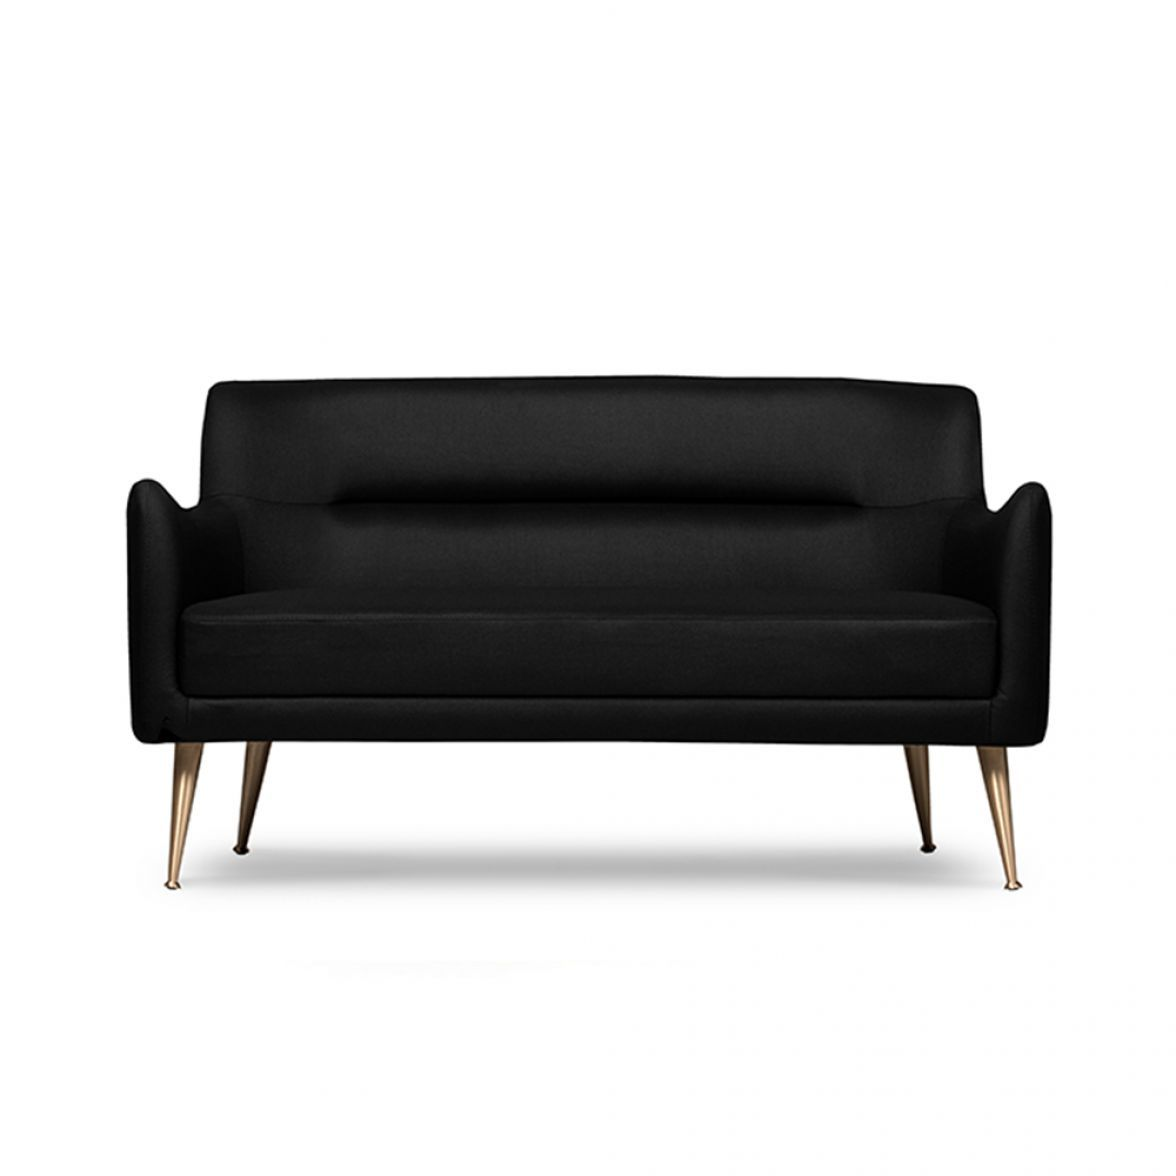 Dandridge Sofa фото цена